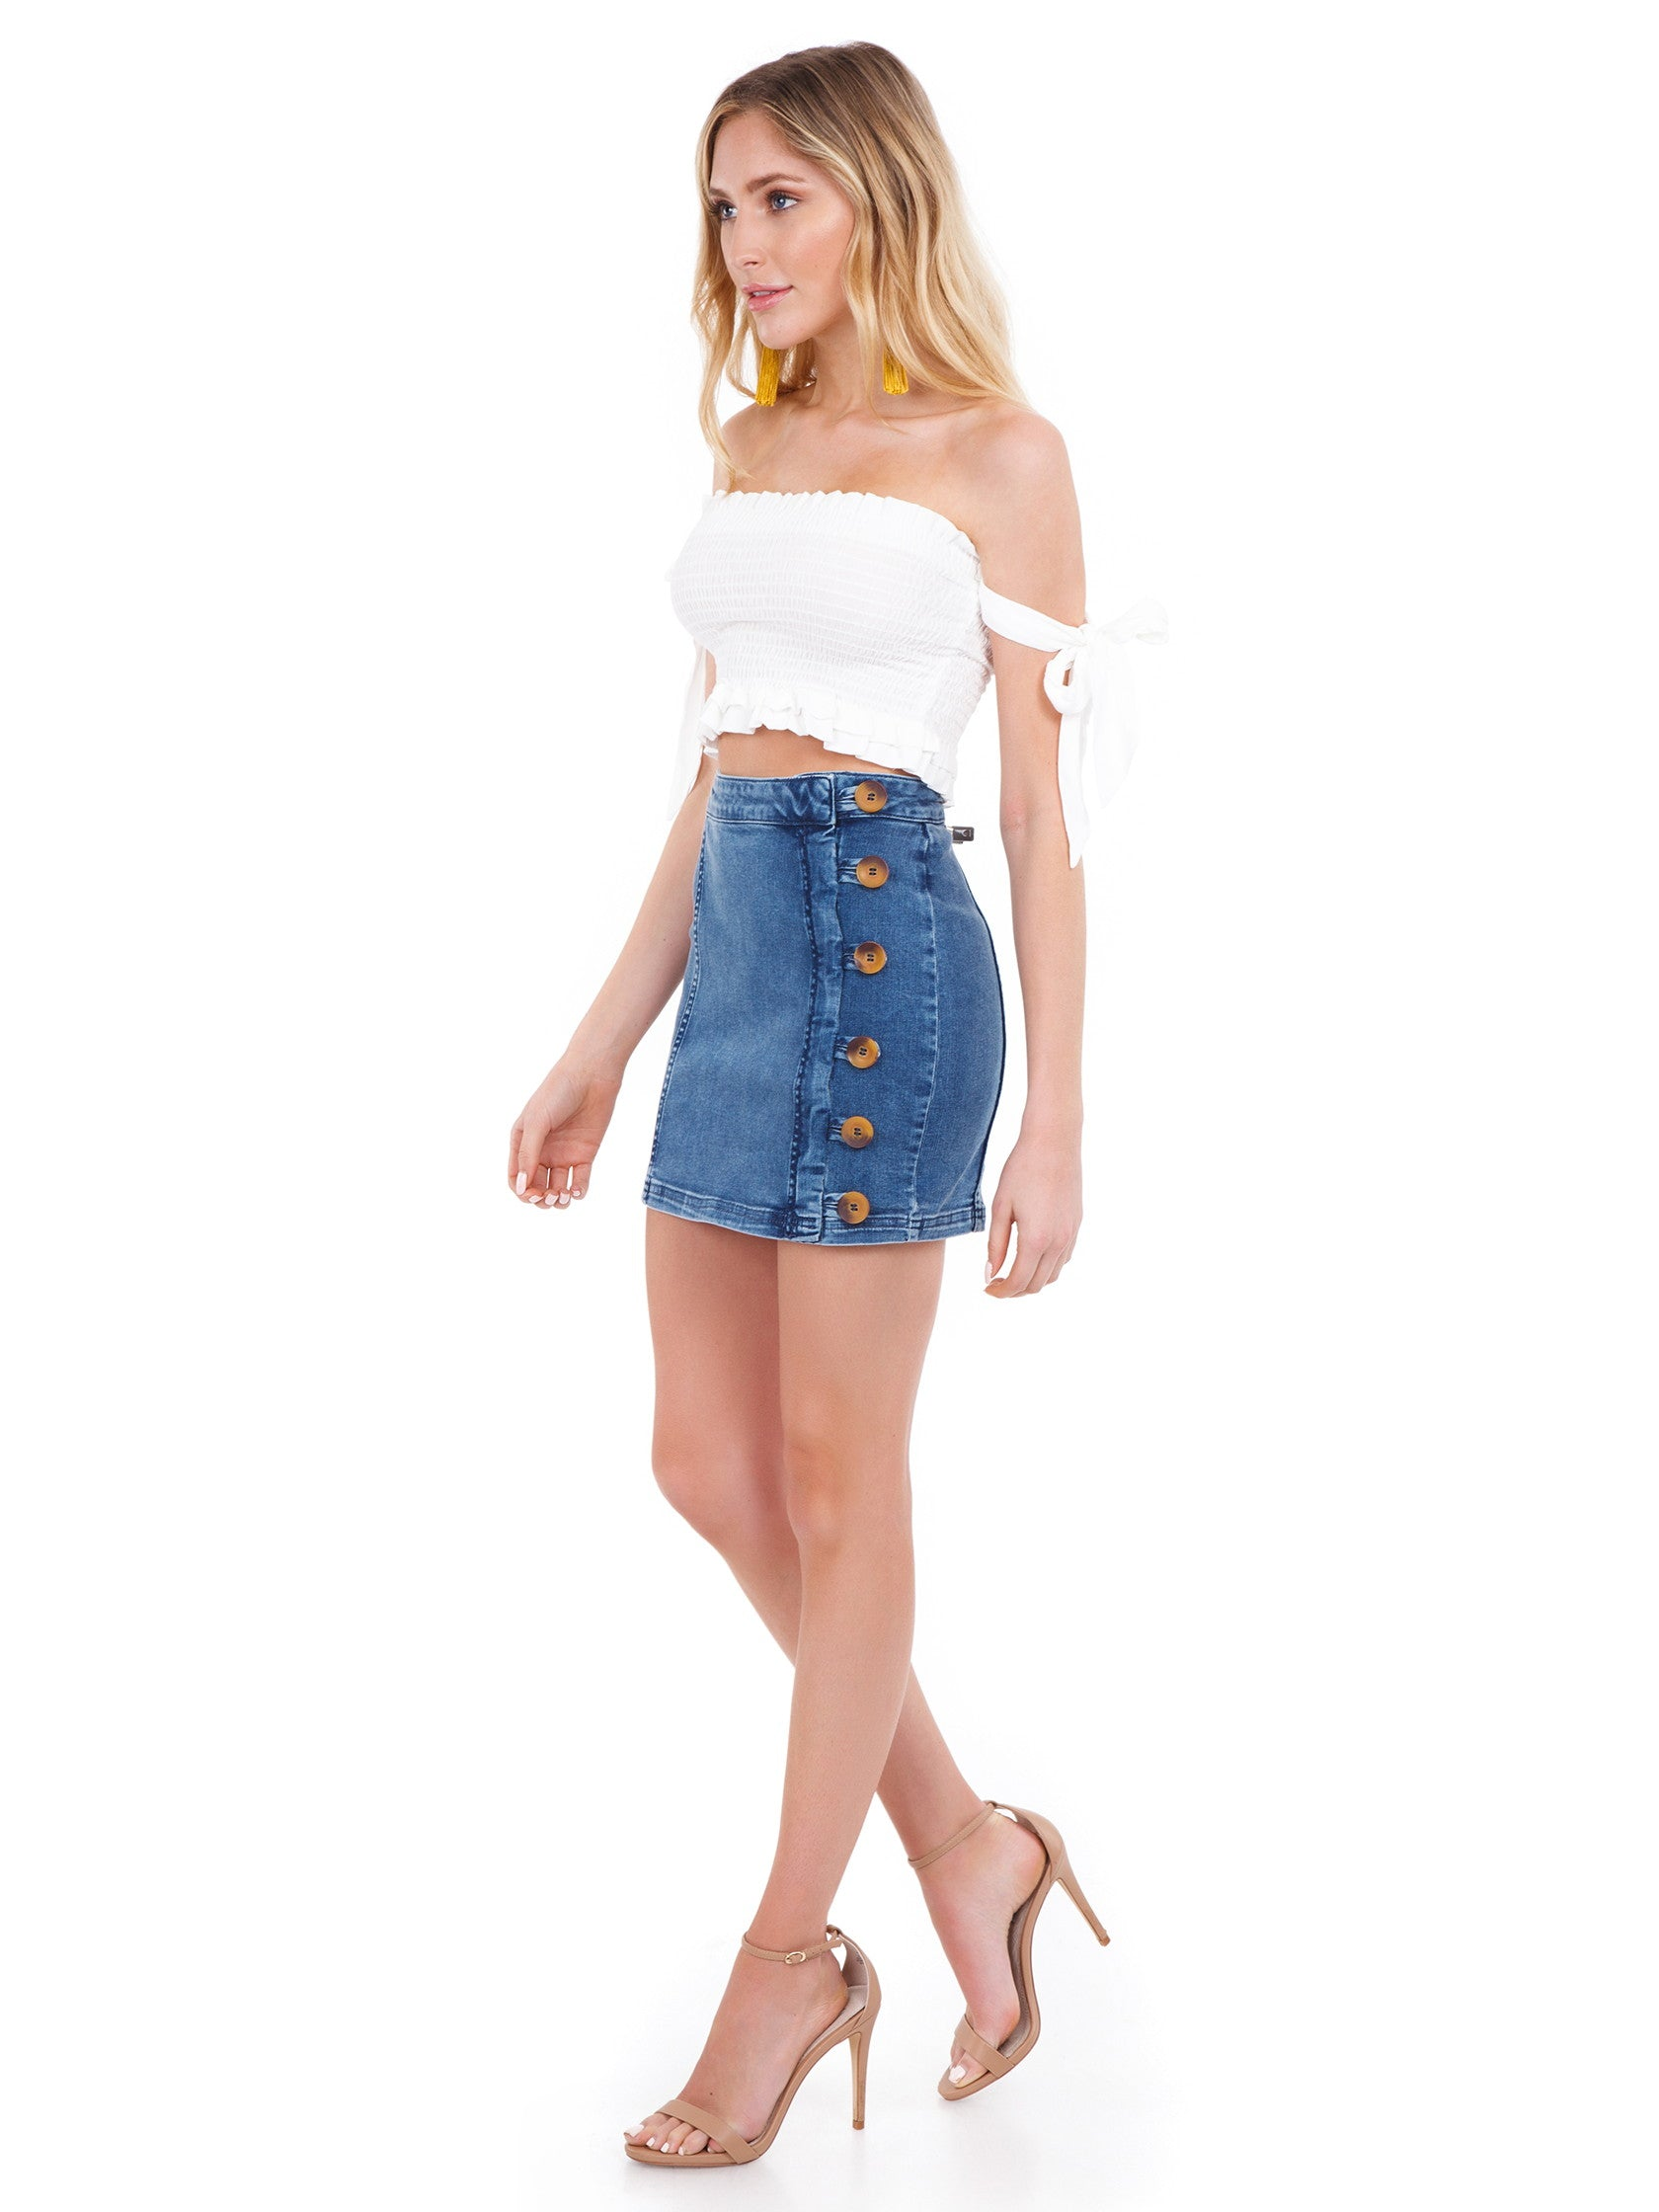 Woman wearing a skirt rental from Free People called Little Daisies Denim Mini Skirt